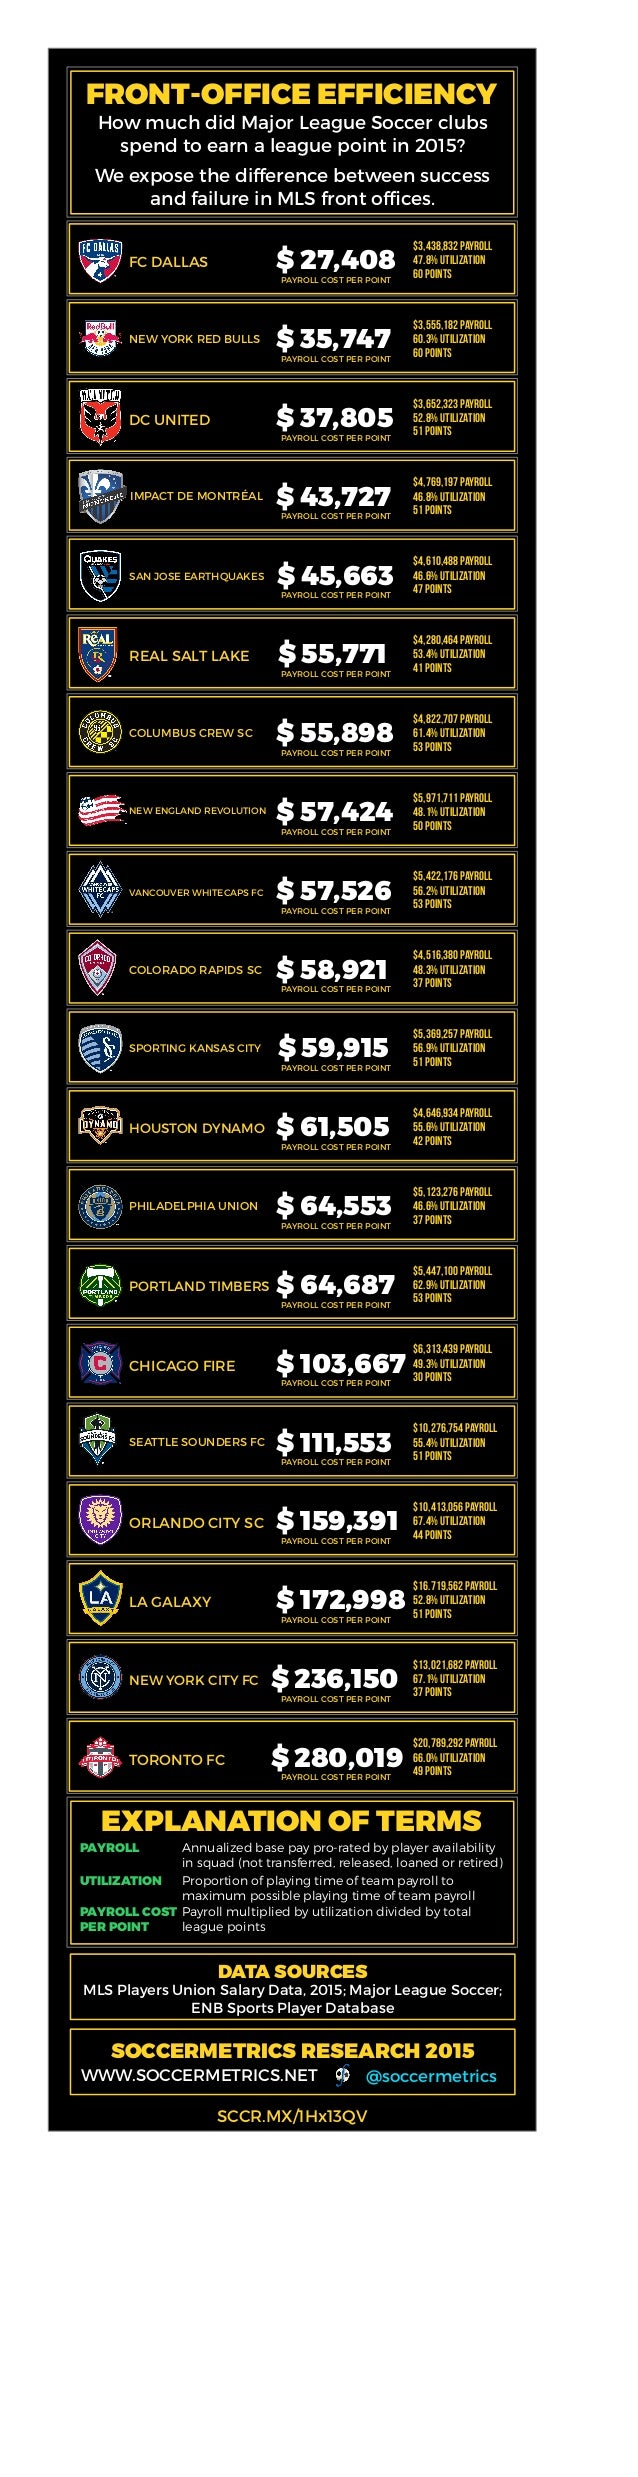 FRONT-OFFICE EFFICIENCY How much did Major League Soccer clubs spend to earn a league point in 2015? We expose the differe...